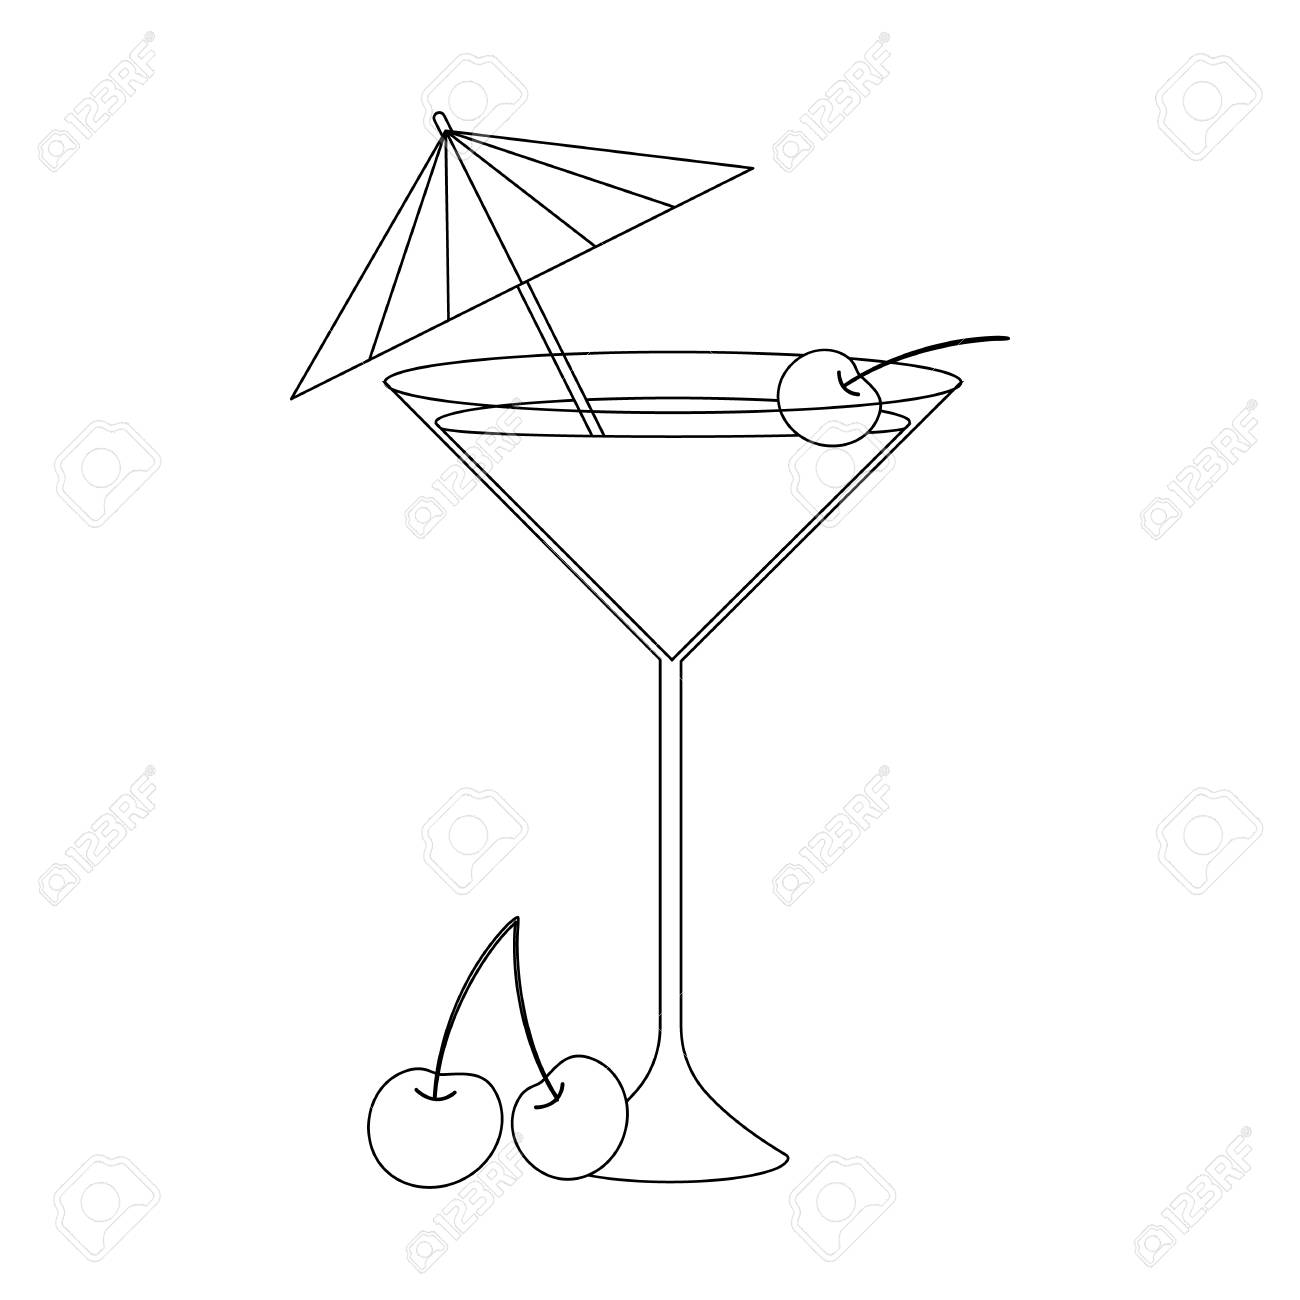 Coloring Book For Children Vector Illustration Cocktail With Cherry And Umbrella Stock